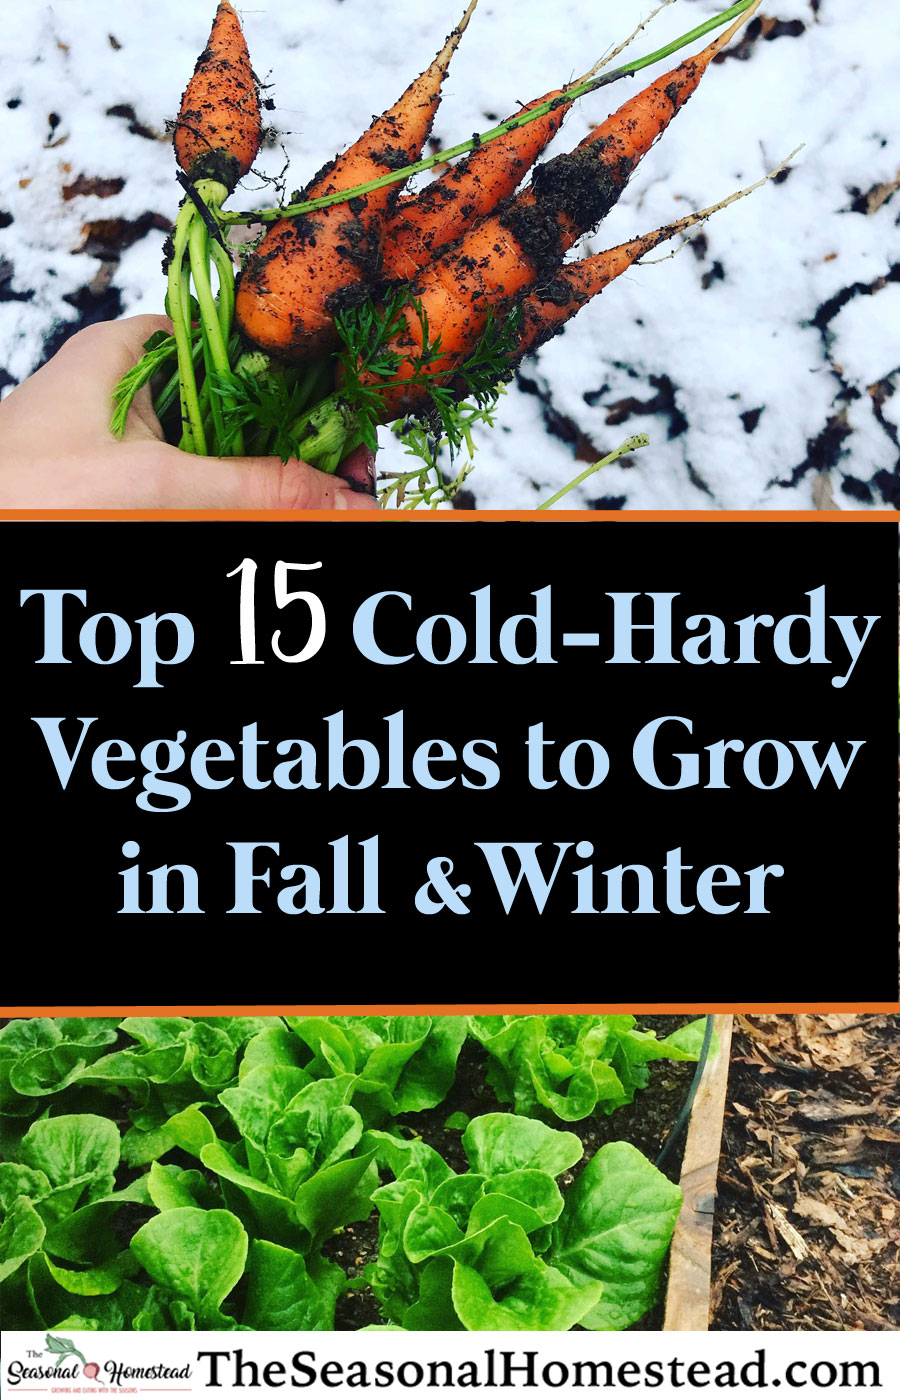 Top-15-Cold-Hardy-Vegetables-to-Grow-in-Fall-and-Winter.jpg